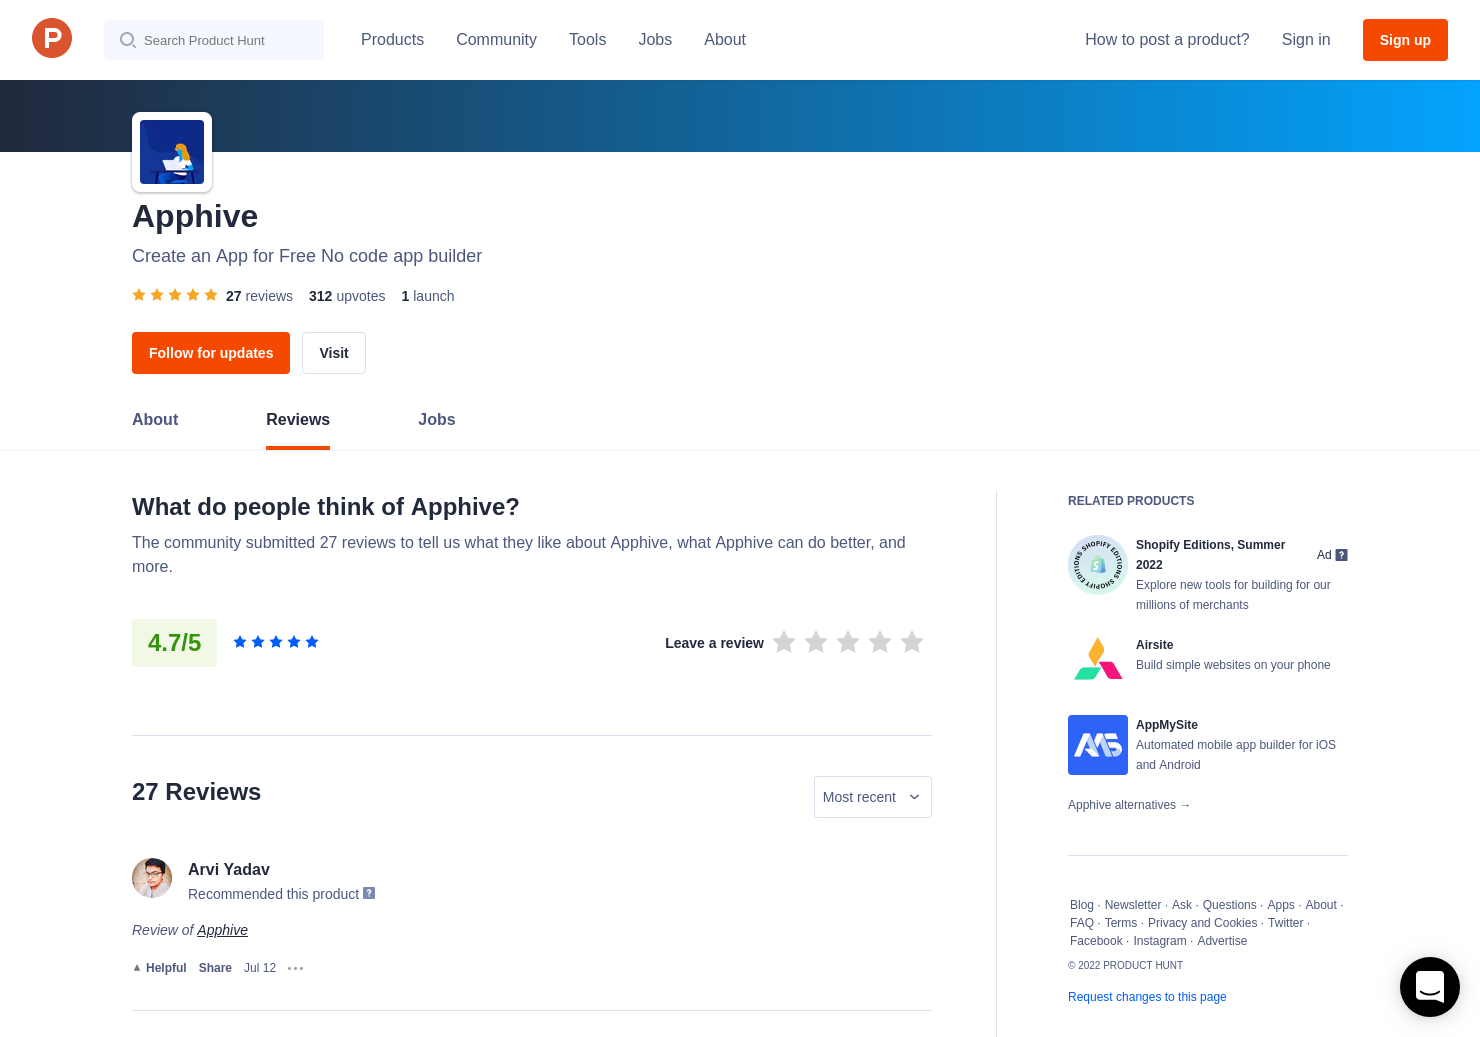 25 Apphive Reviews - Pros, Cons and Rating | Product Hunt